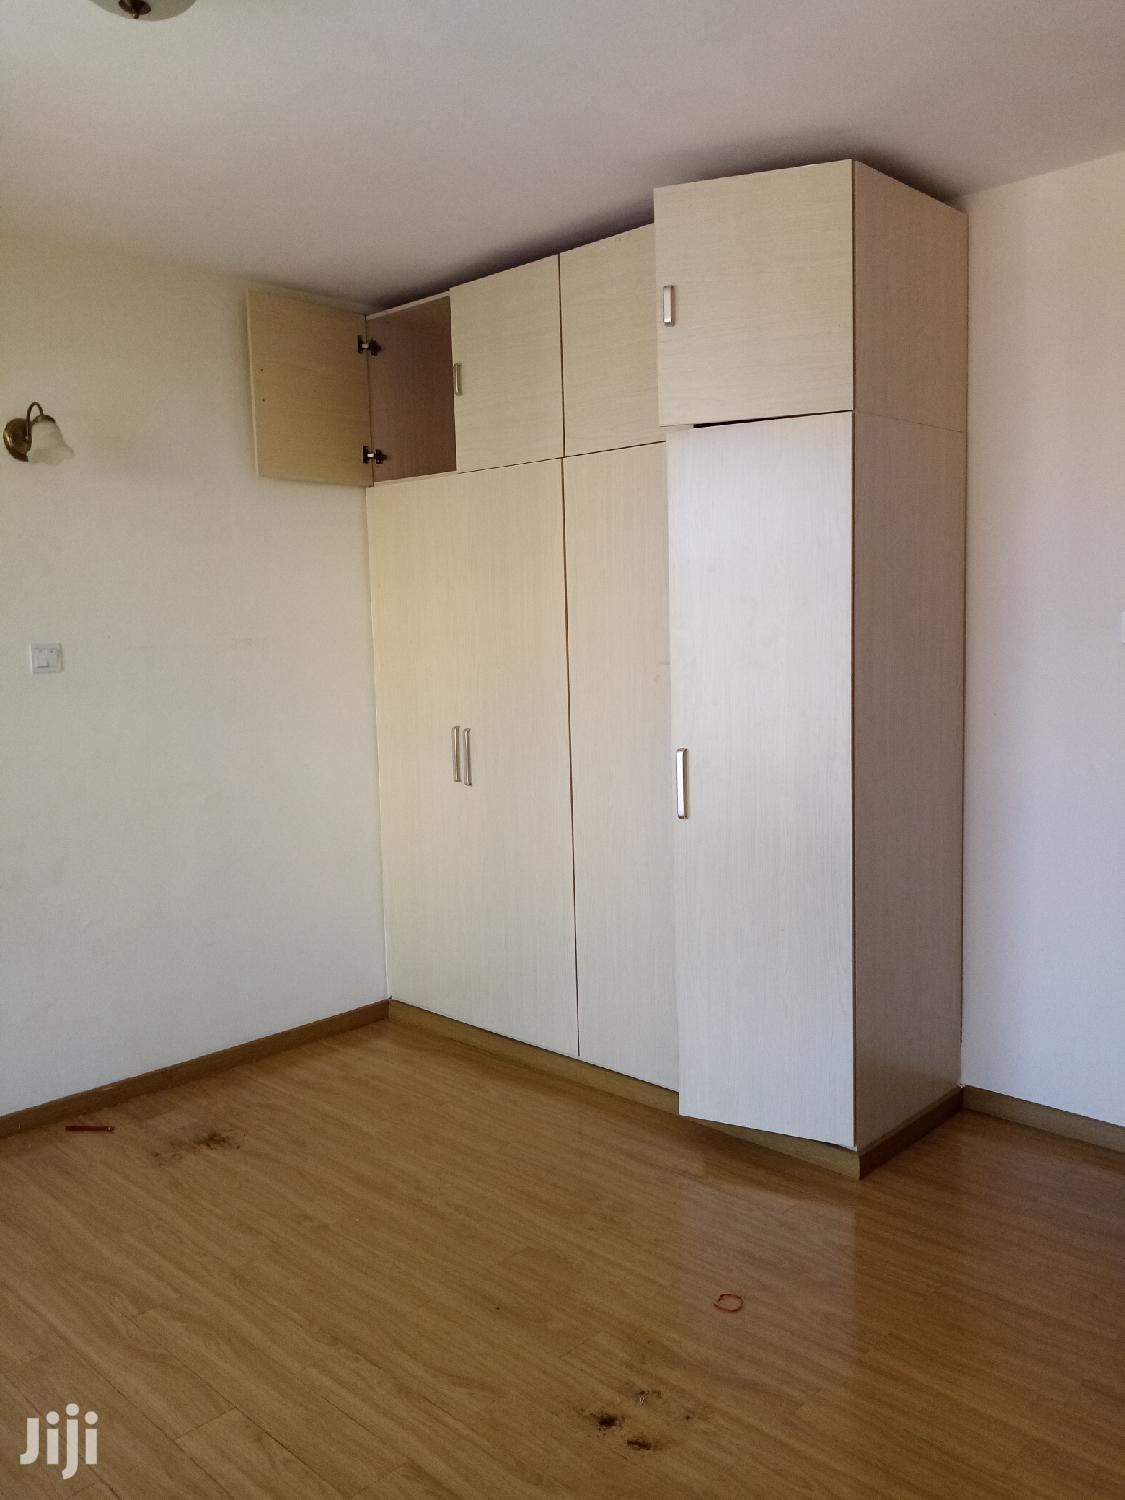 Property World, 2brs Apartment With Lift, Gym And Secure   Houses & Apartments For Rent for sale in Lavington, Nairobi, Kenya